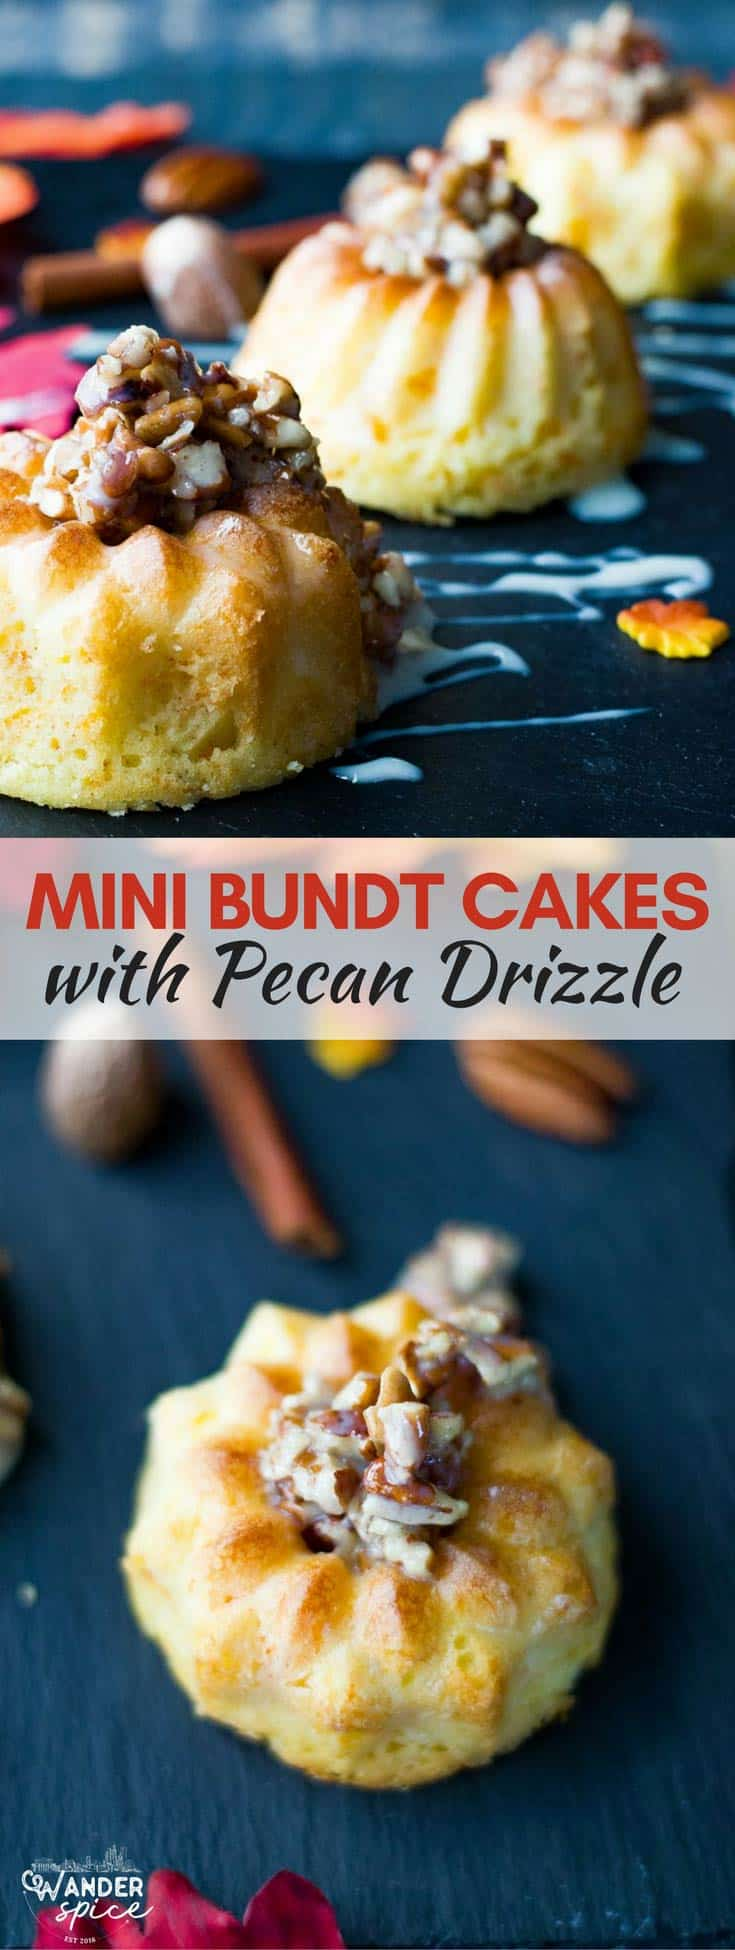 Easy-Bundt-Cake-Recipe-with-Pecans---Mini-Bundts